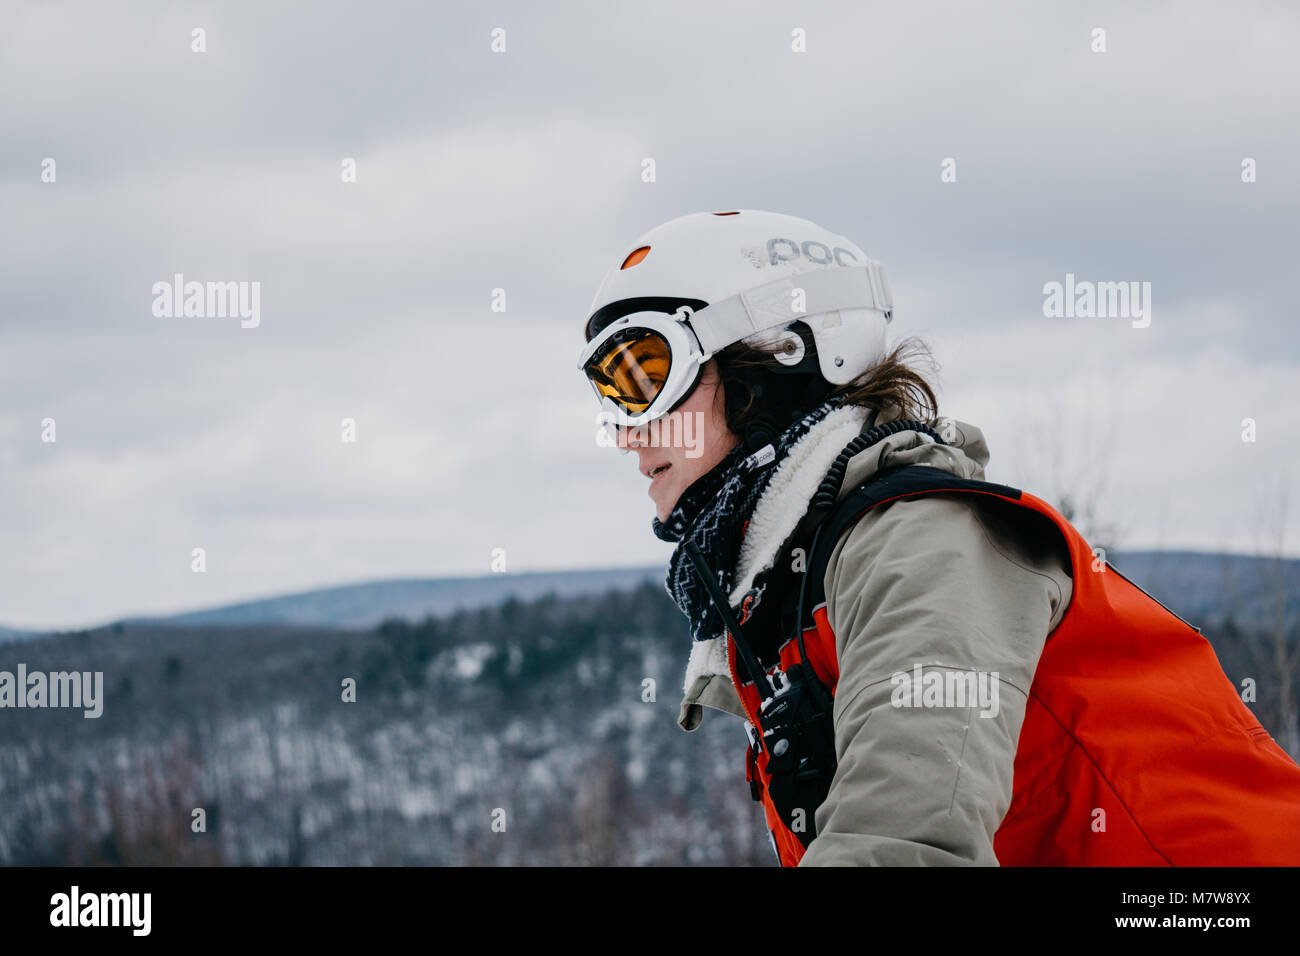 female ski patroller on mountain - Stock Image